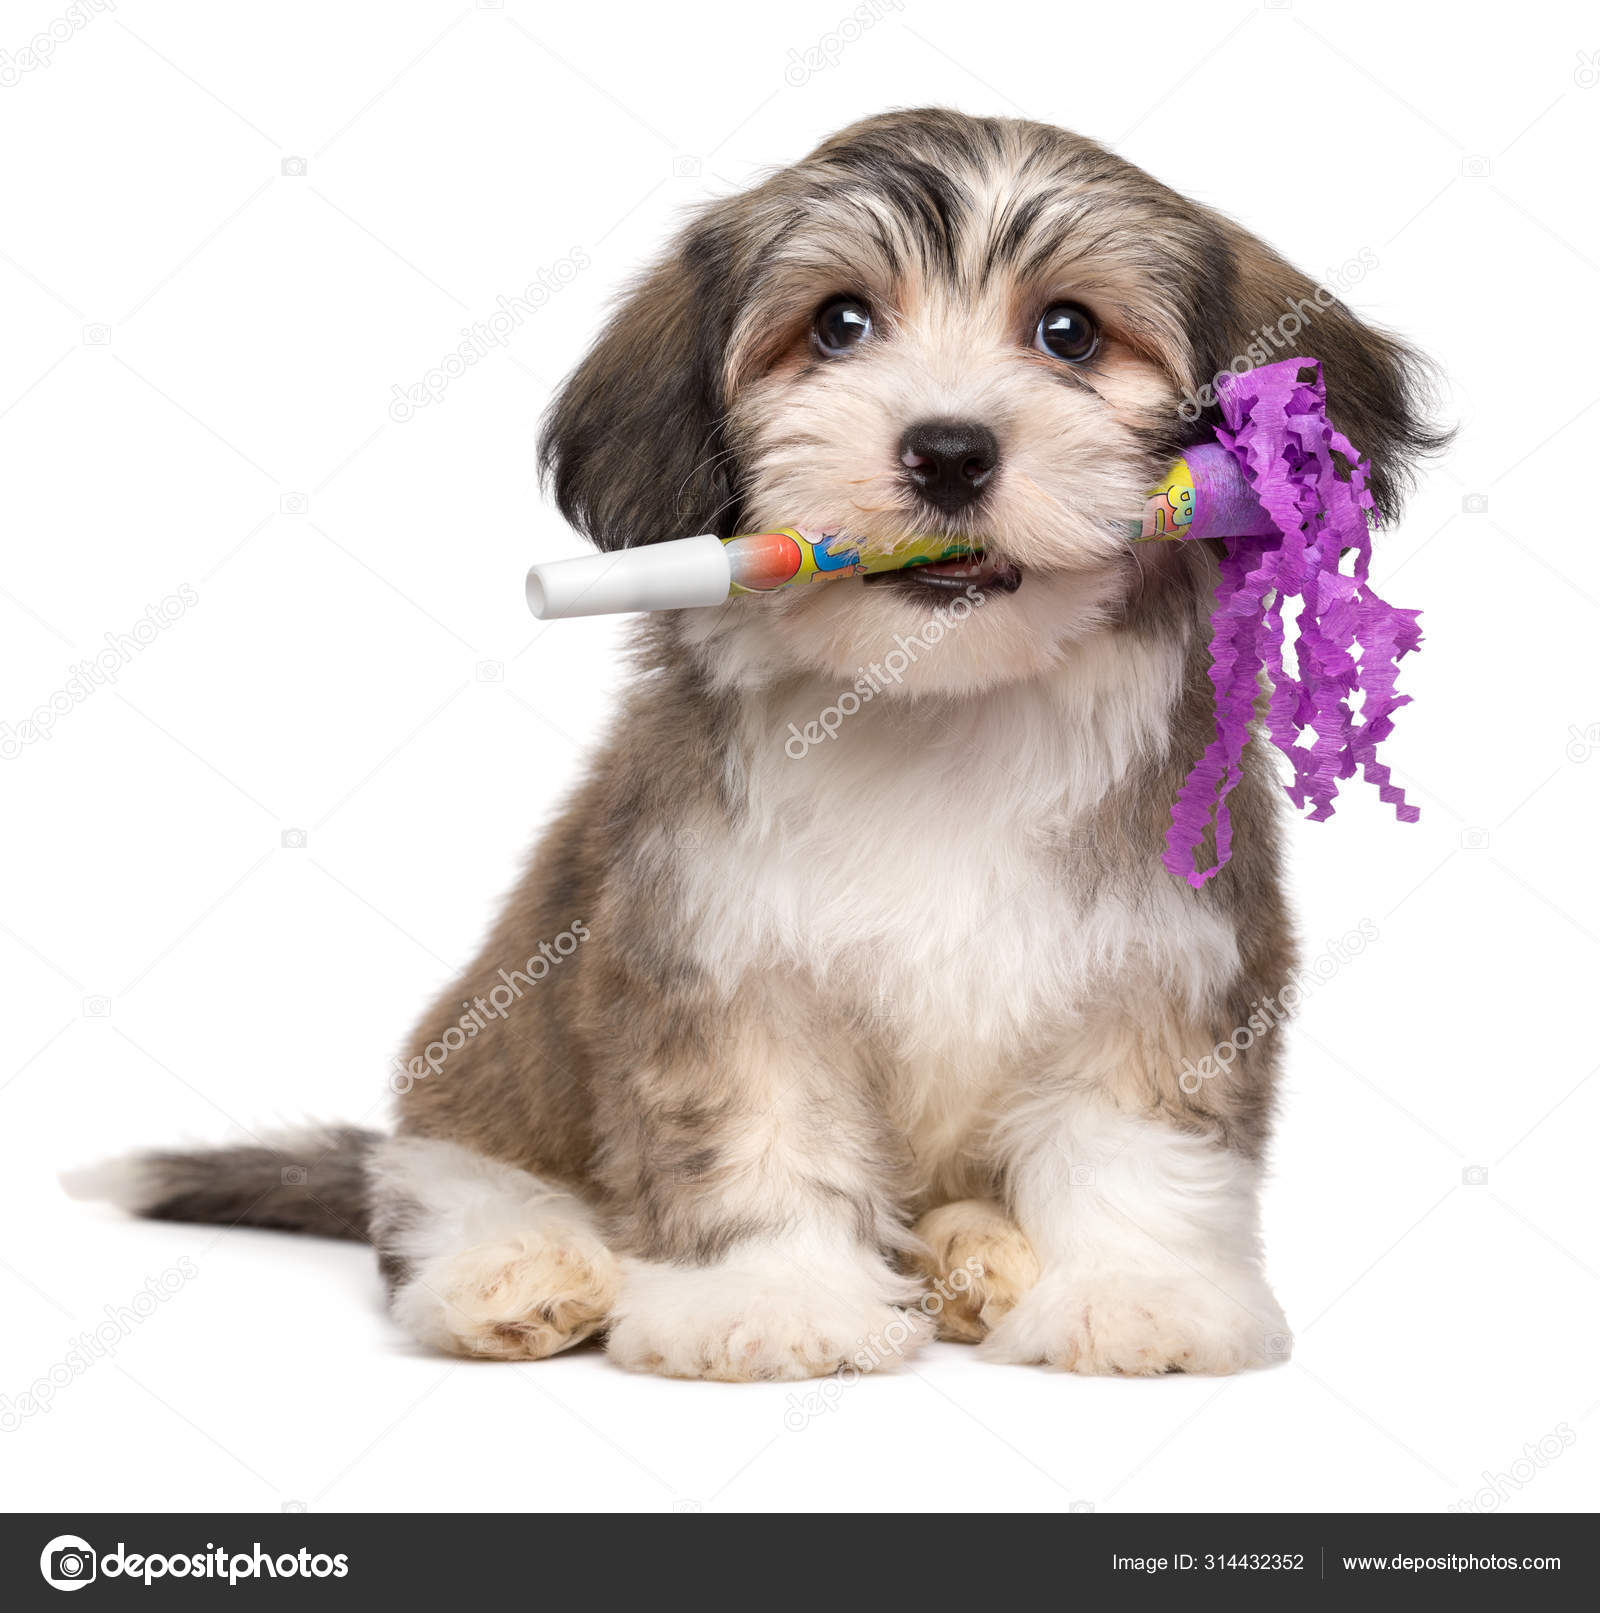 Cute Havanese Puppy With A New Year S Eve Trumpet In His Mouth Stock Photo C Mdorottya 314432352